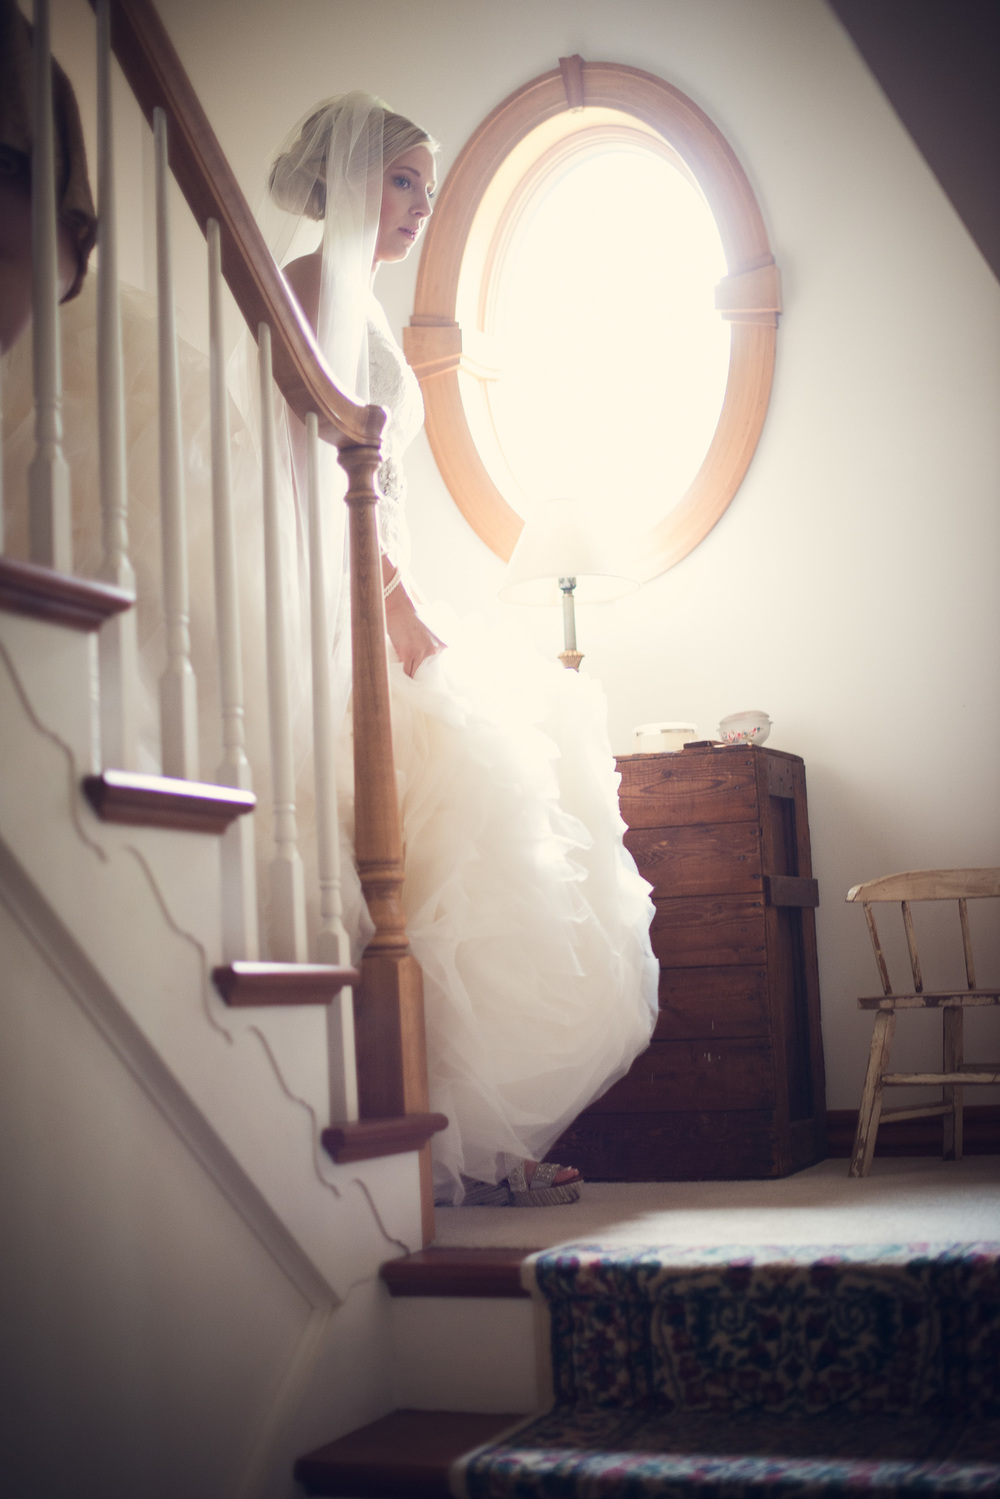 bride coming down stairs dress window light